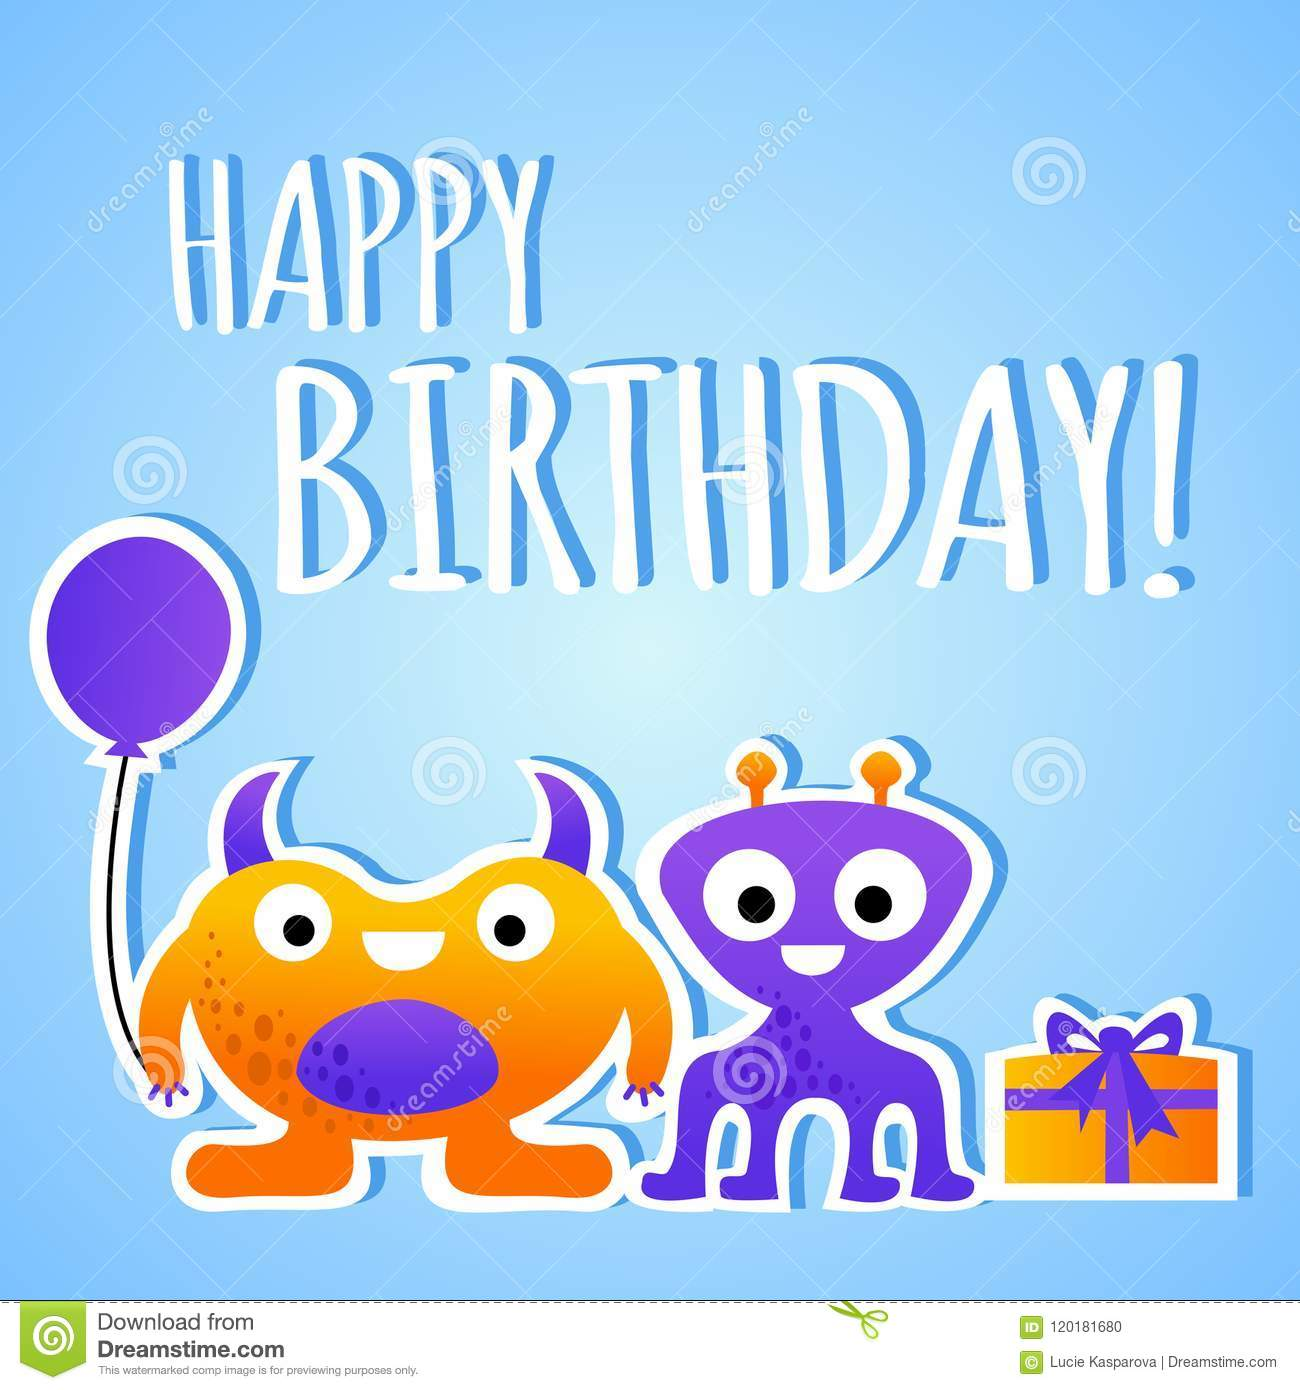 Funny Cartoon Colorful Birthday Greeting Card For Children With Monster Characters